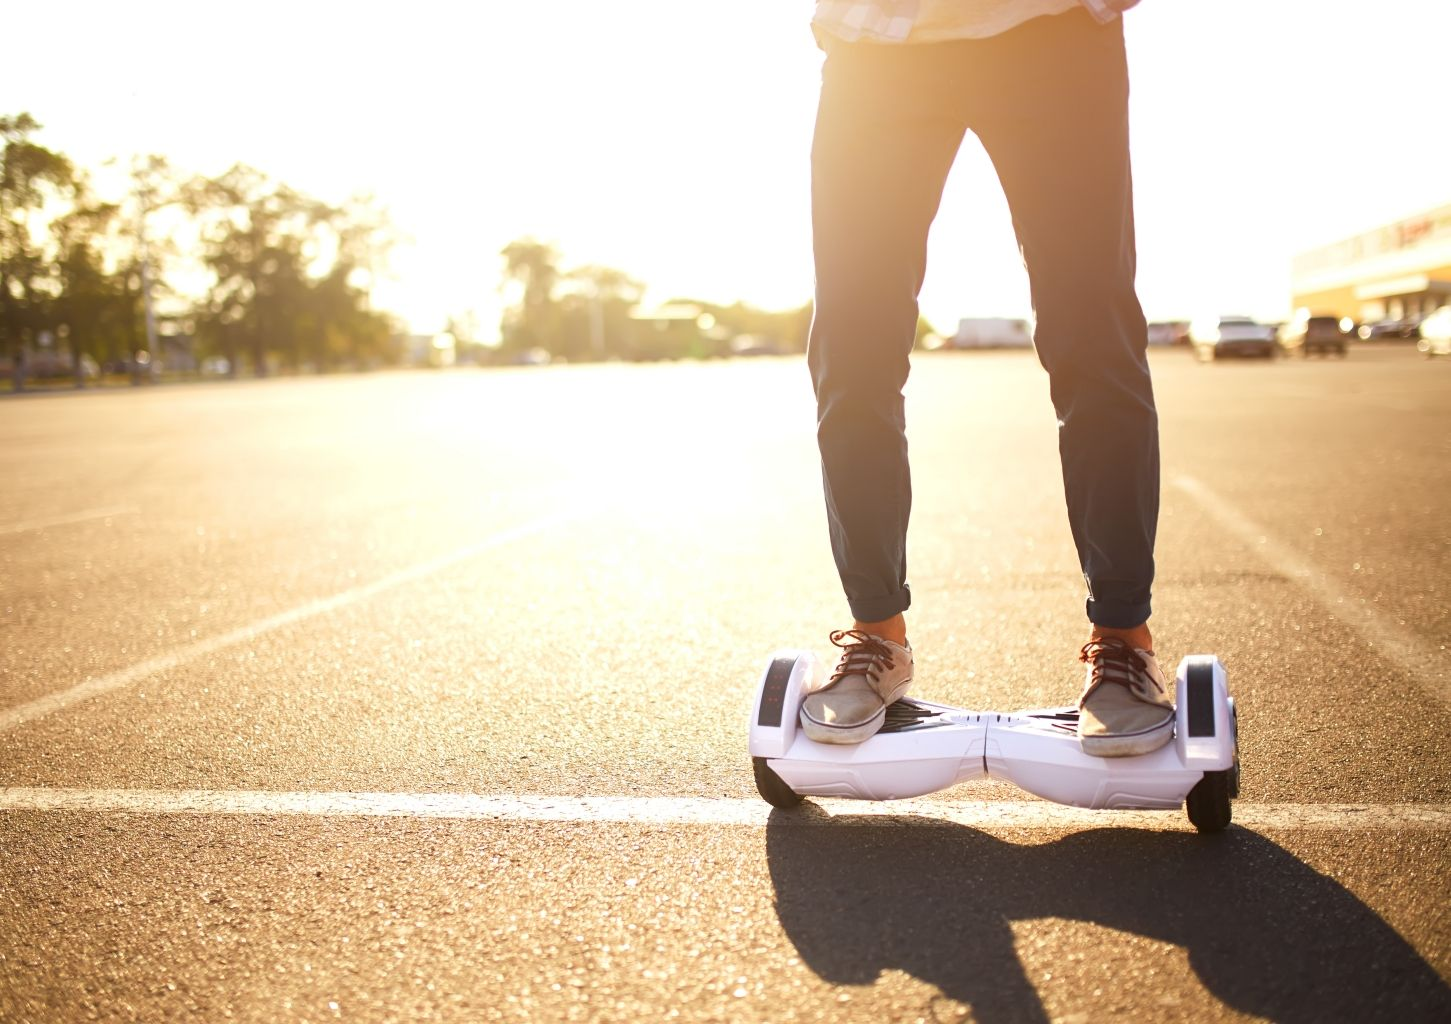 Izbrauciens ar Hoverboard 24h